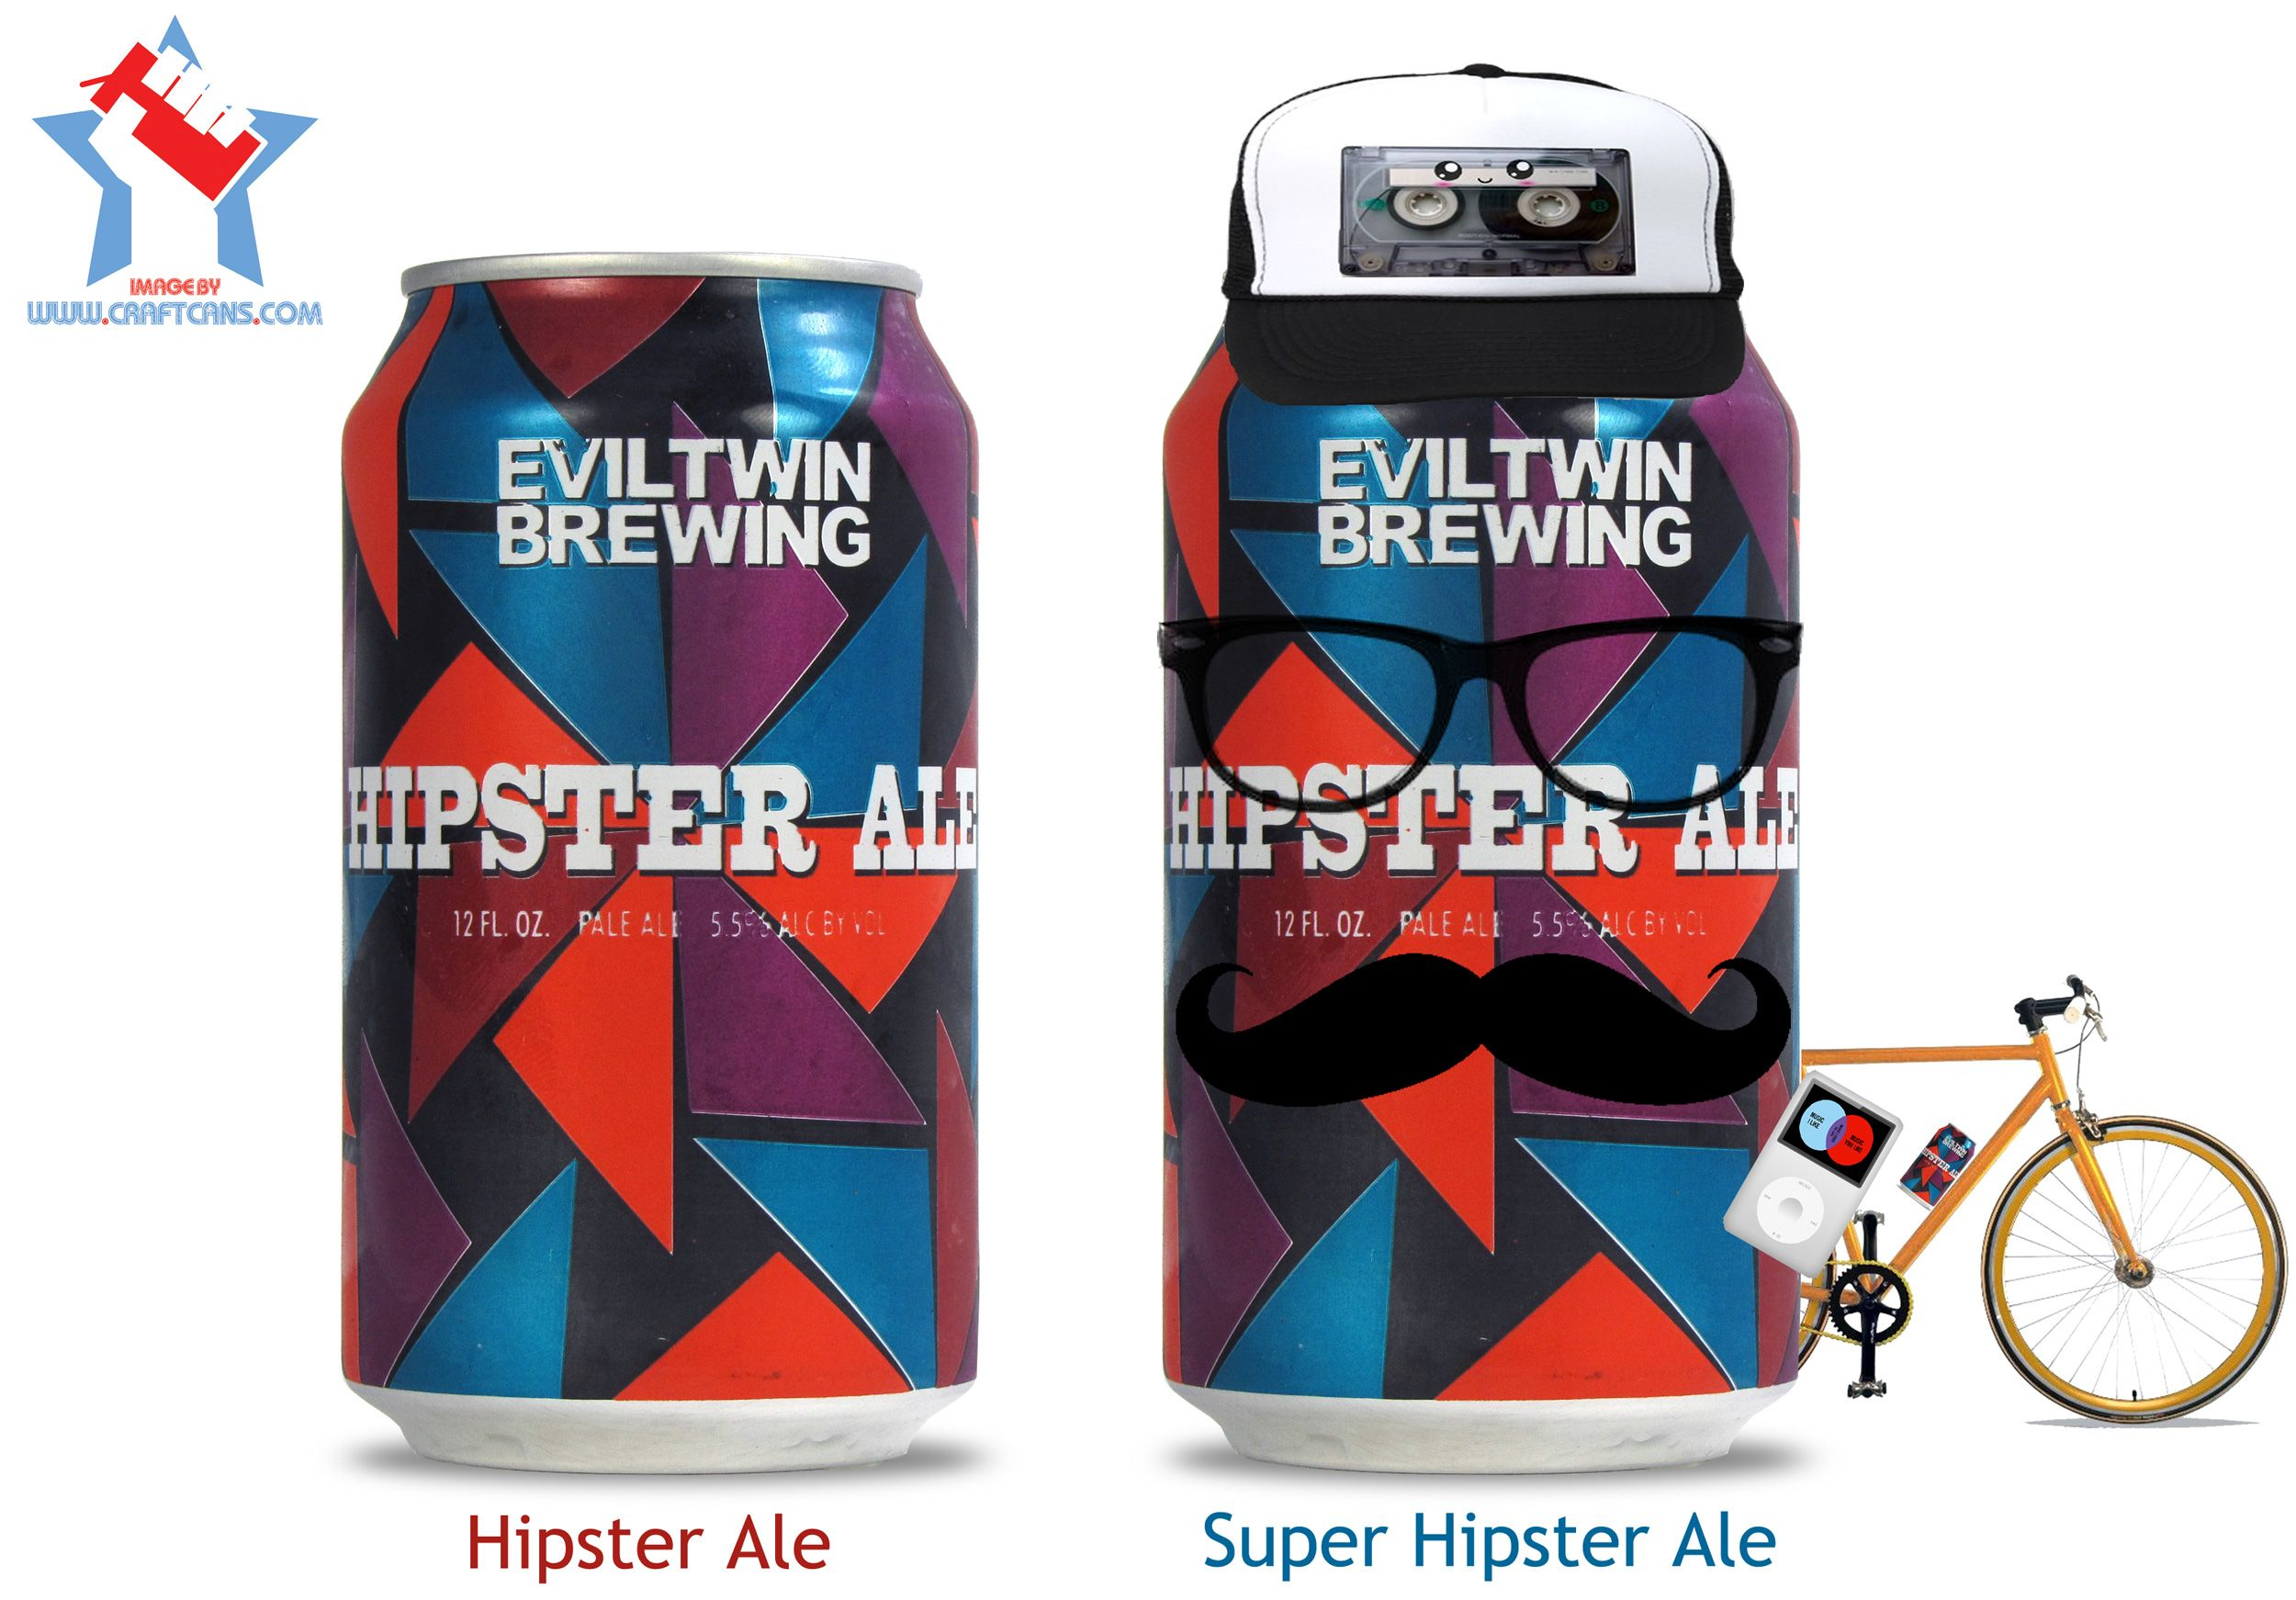 Hipster Ale and Super Hipster Ale